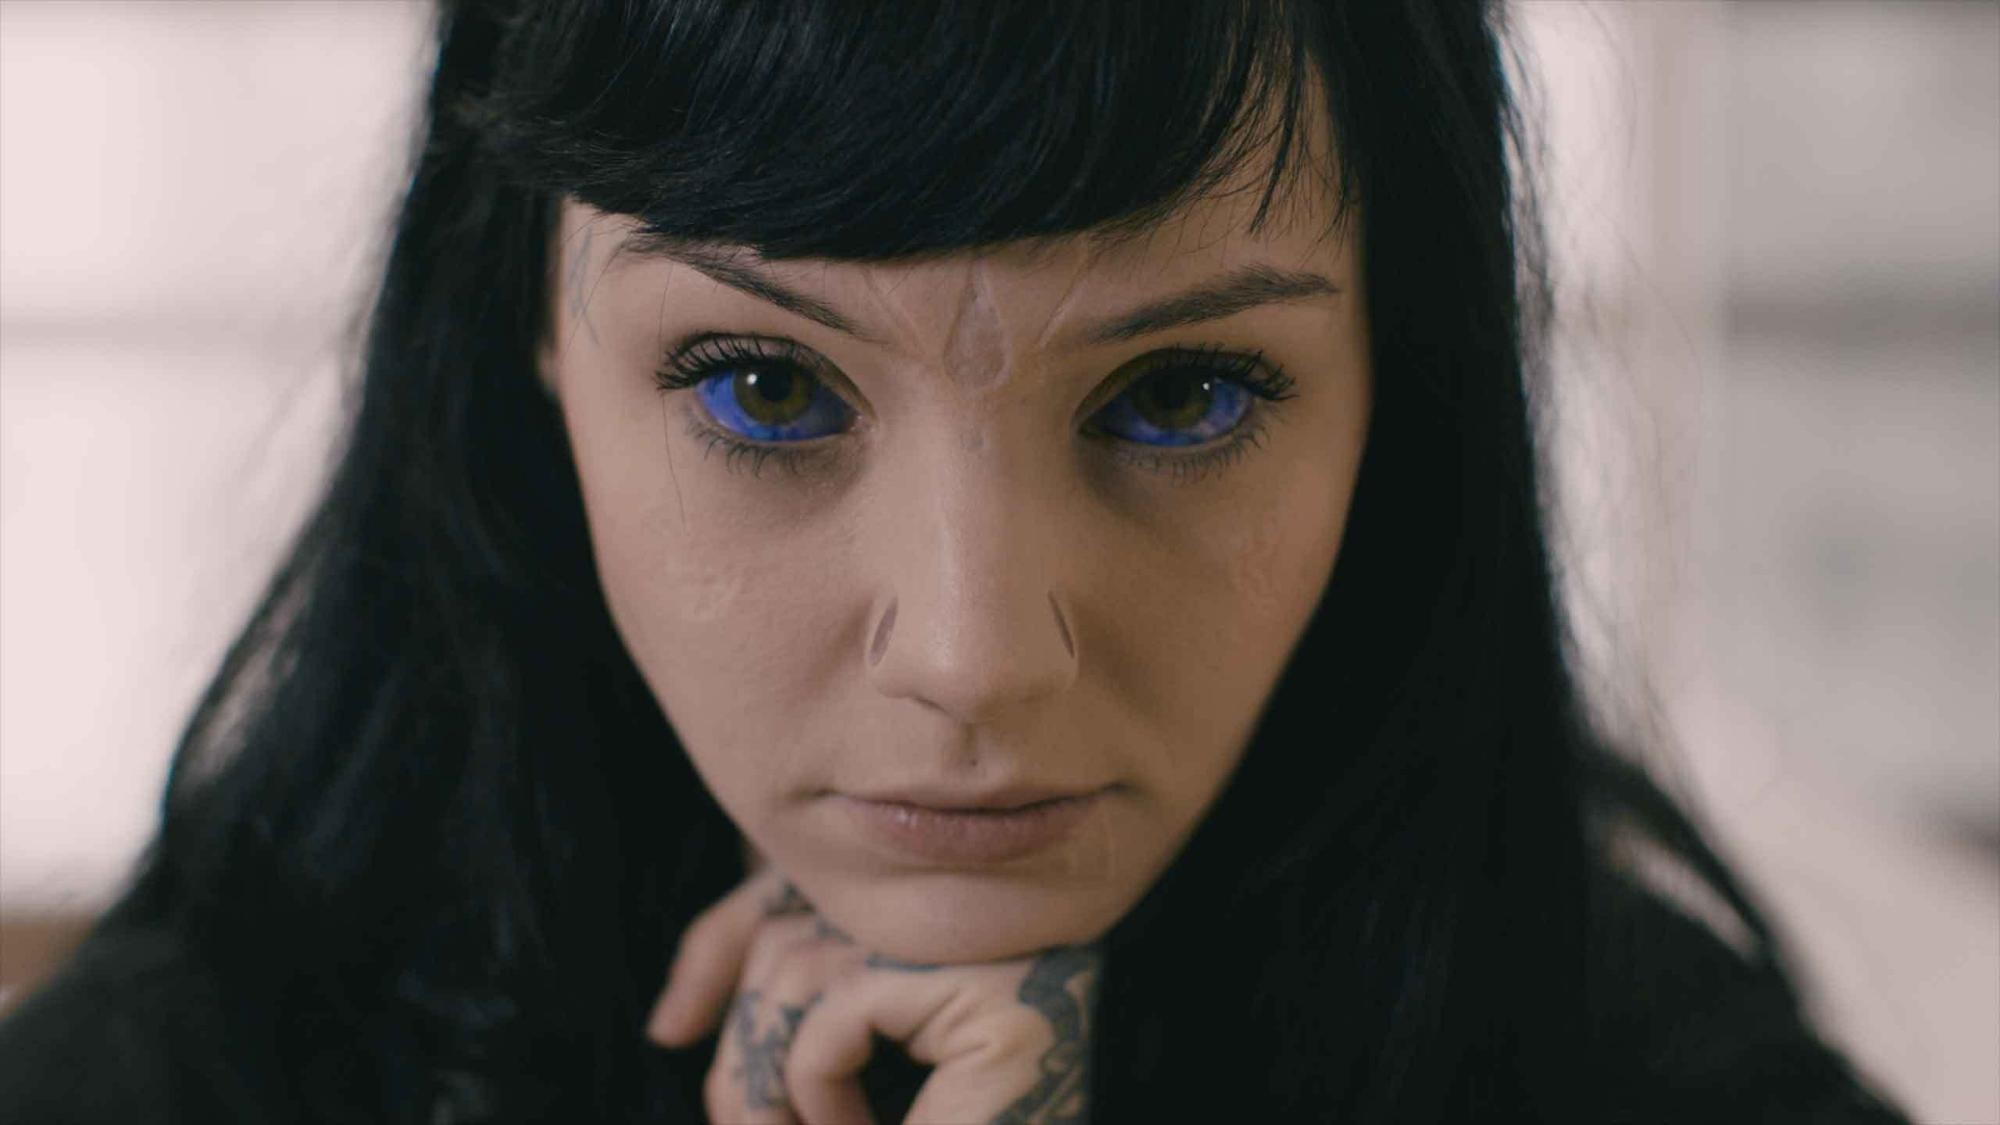 10 things we learnt about beauty at last night's talk with grace neutral